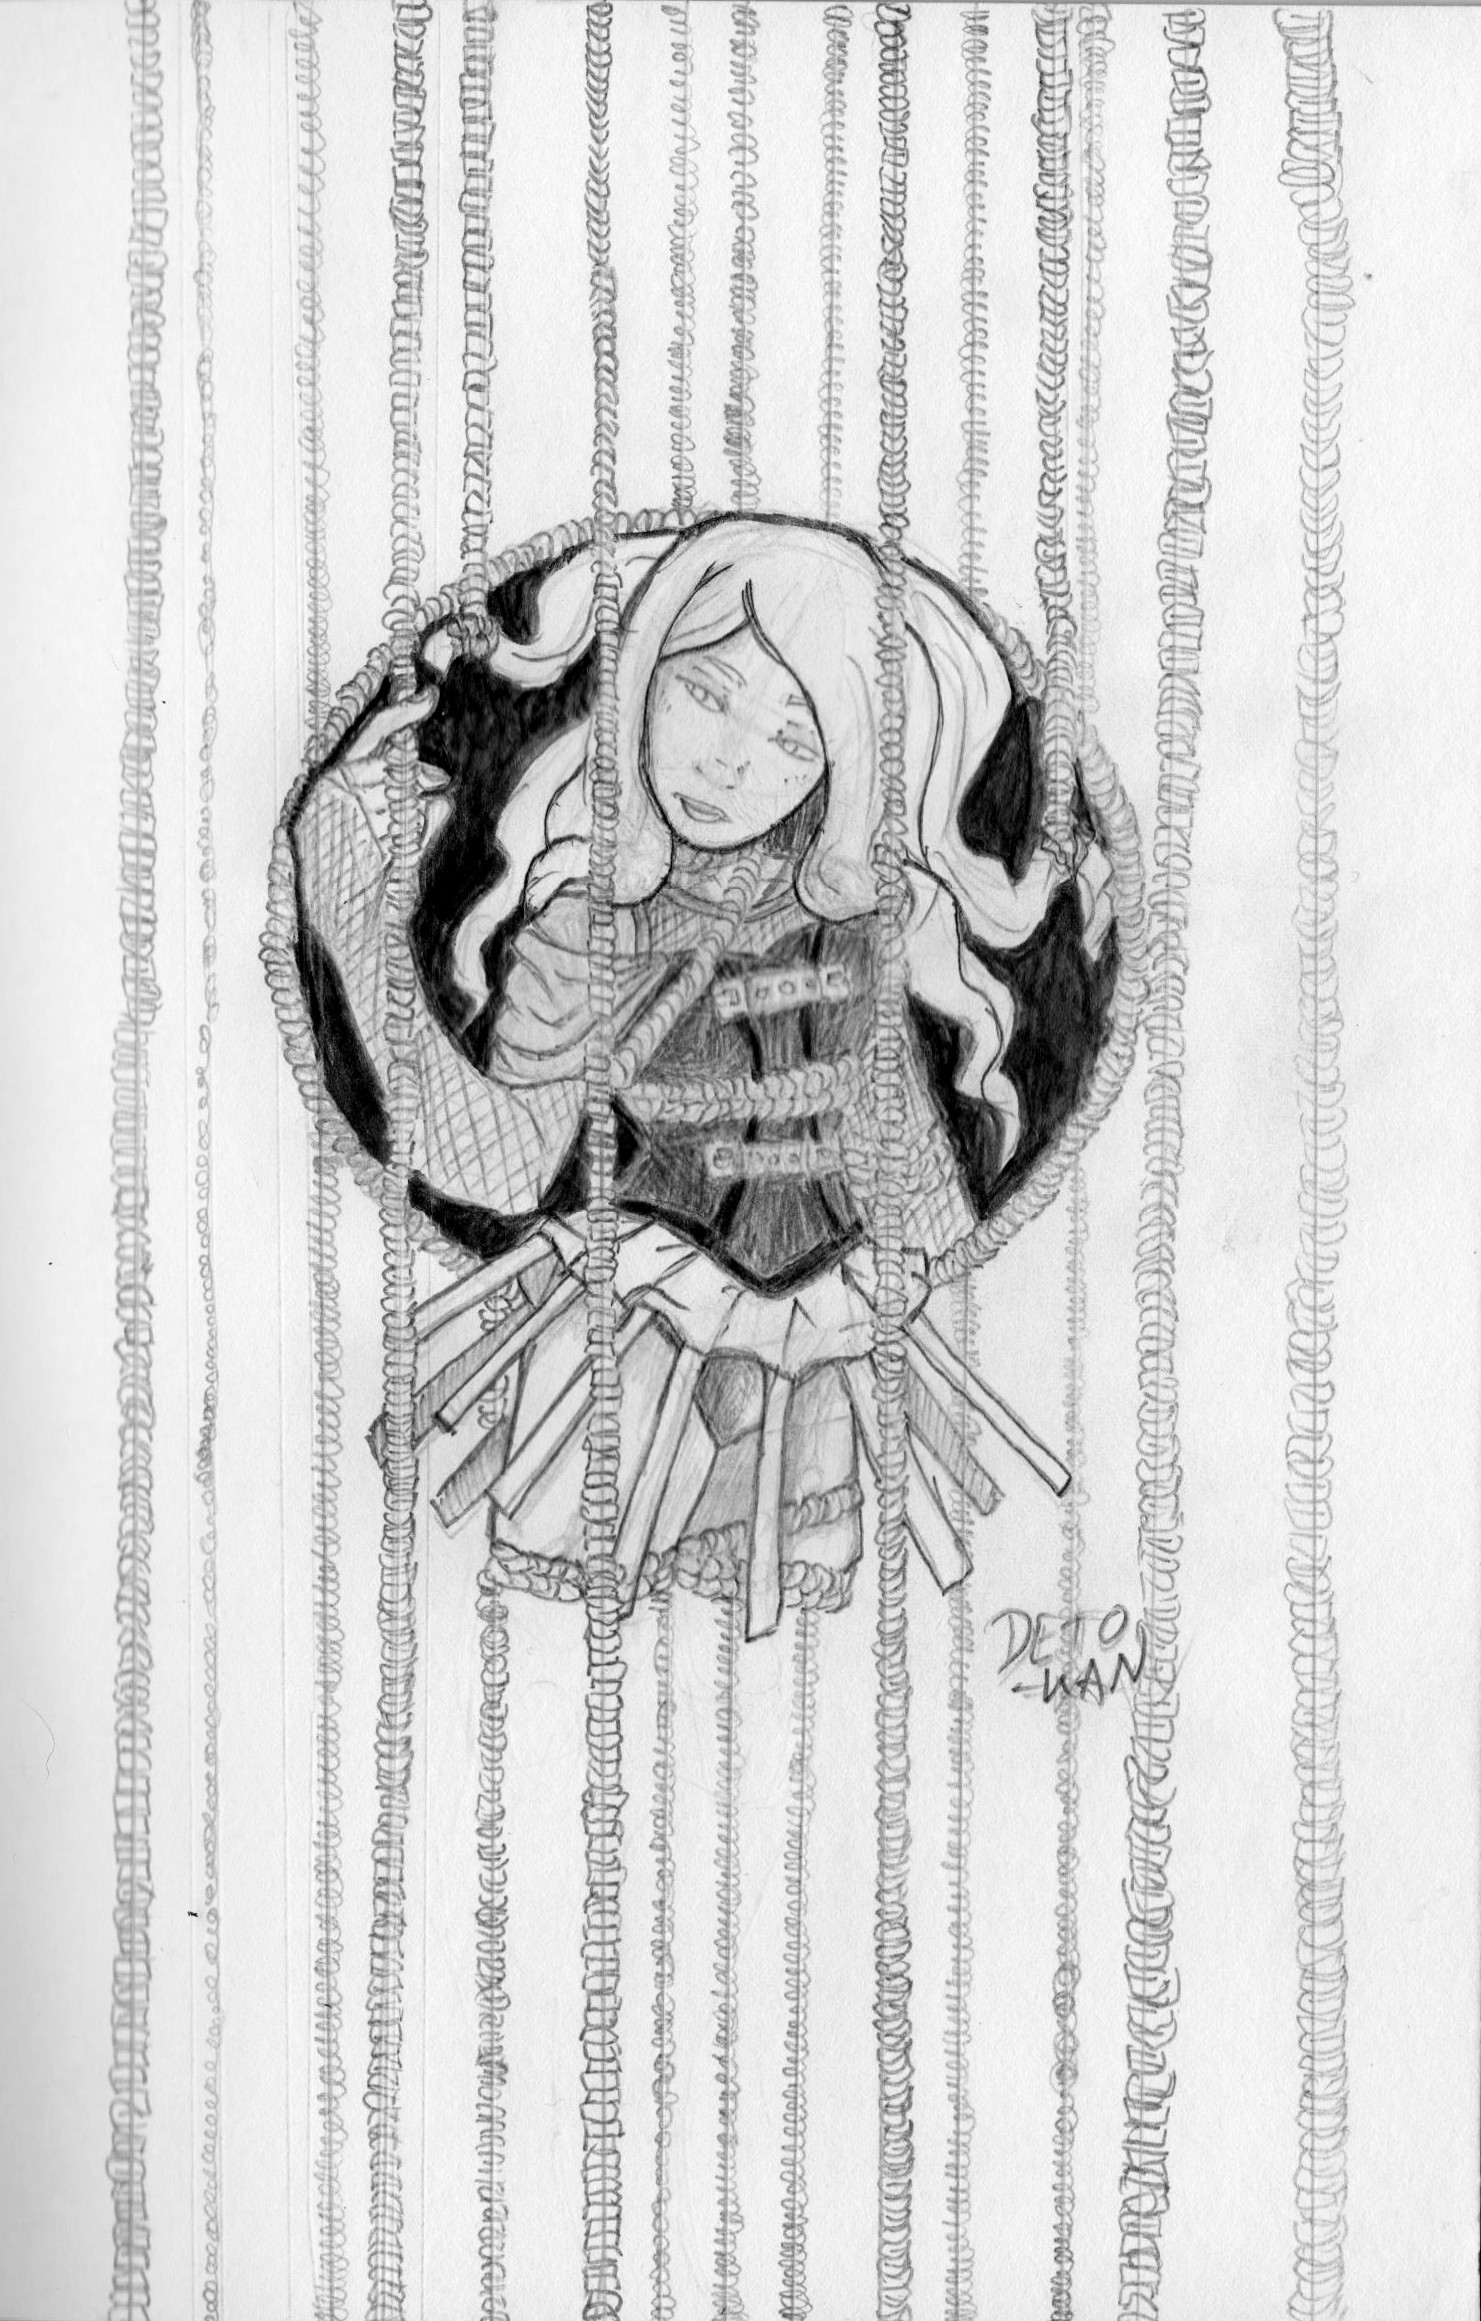 Detonya kan caged rose initial sketch